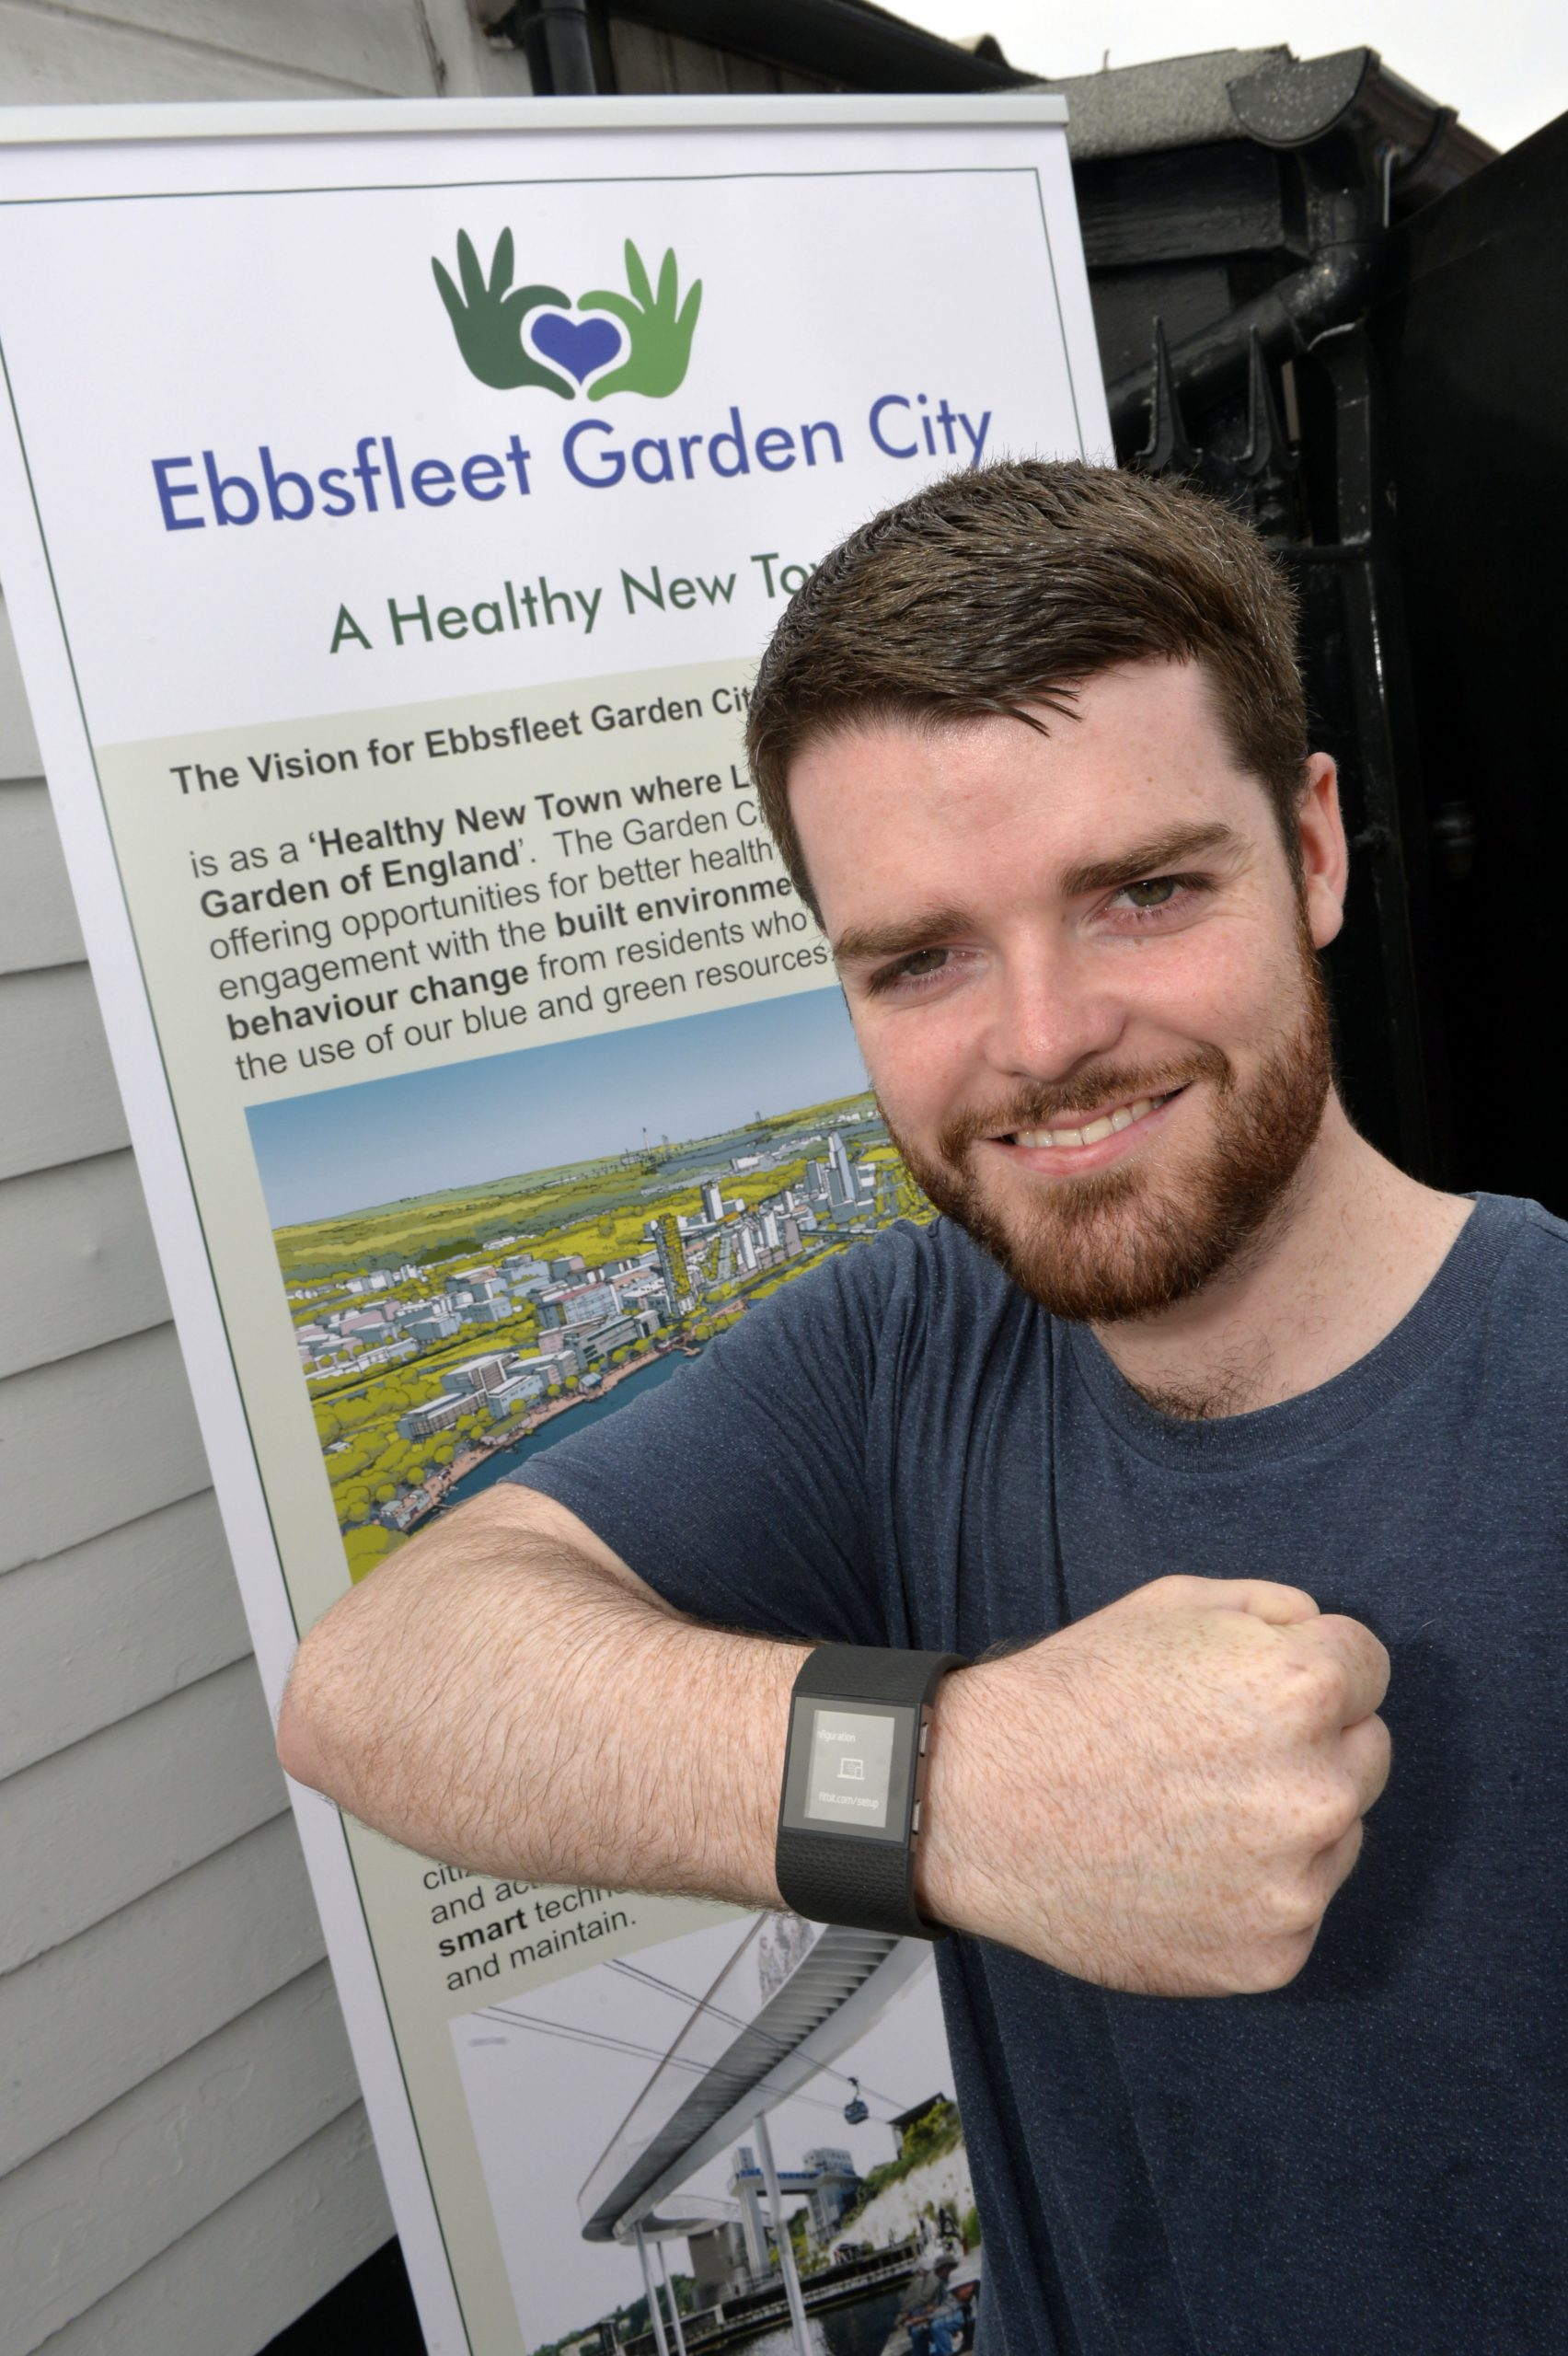 A man with a fitbit watch